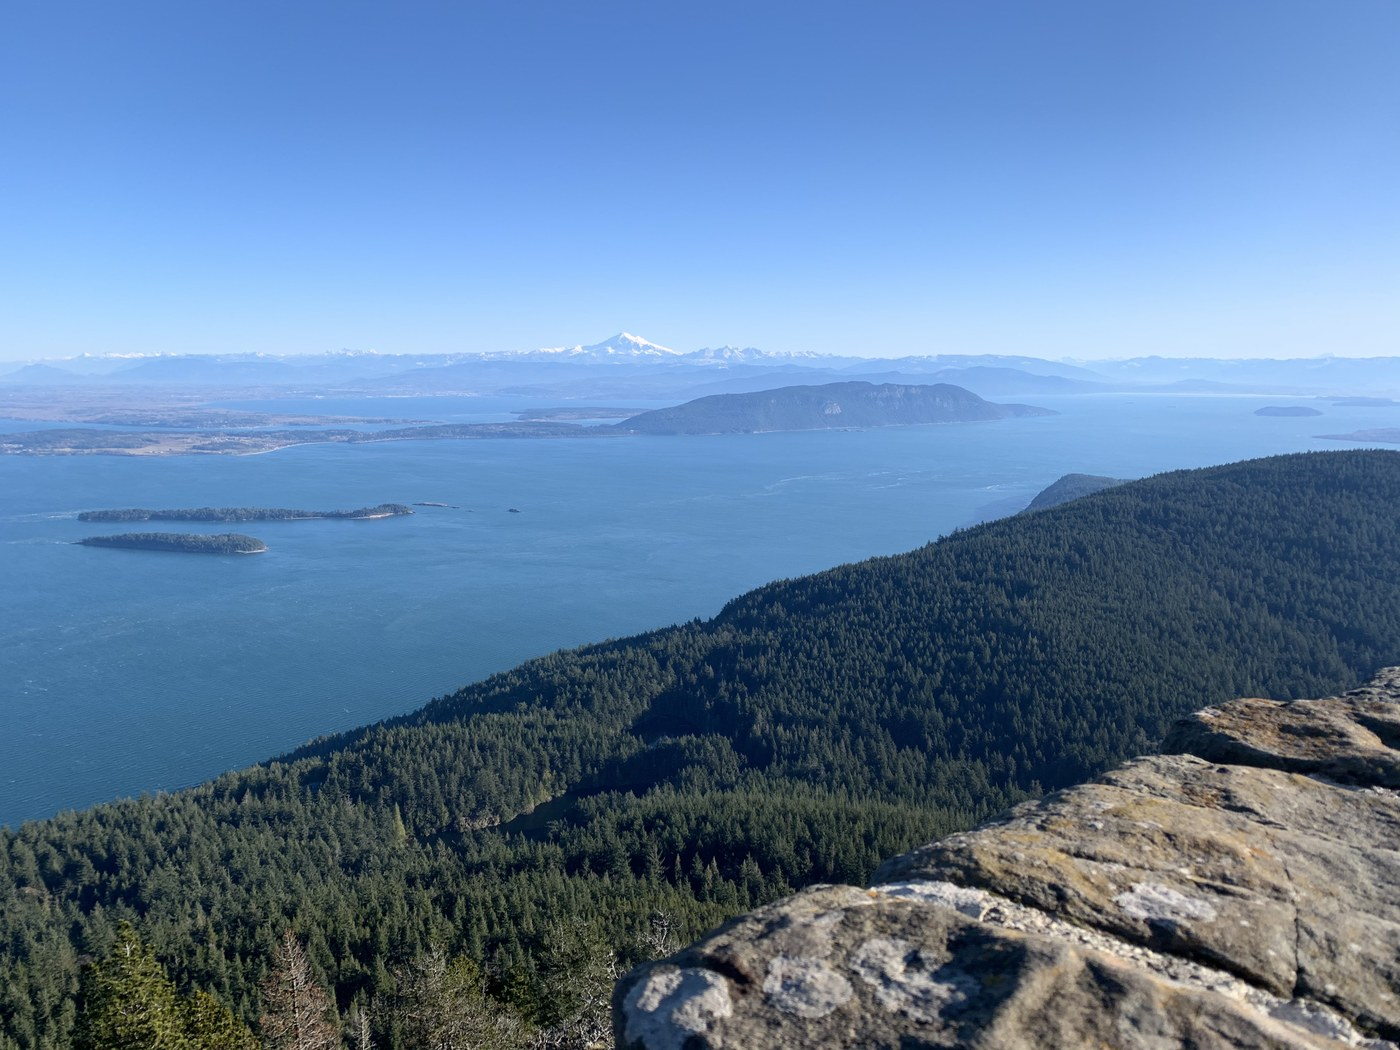 View from Mount Constitution. Photo by Phaunts.